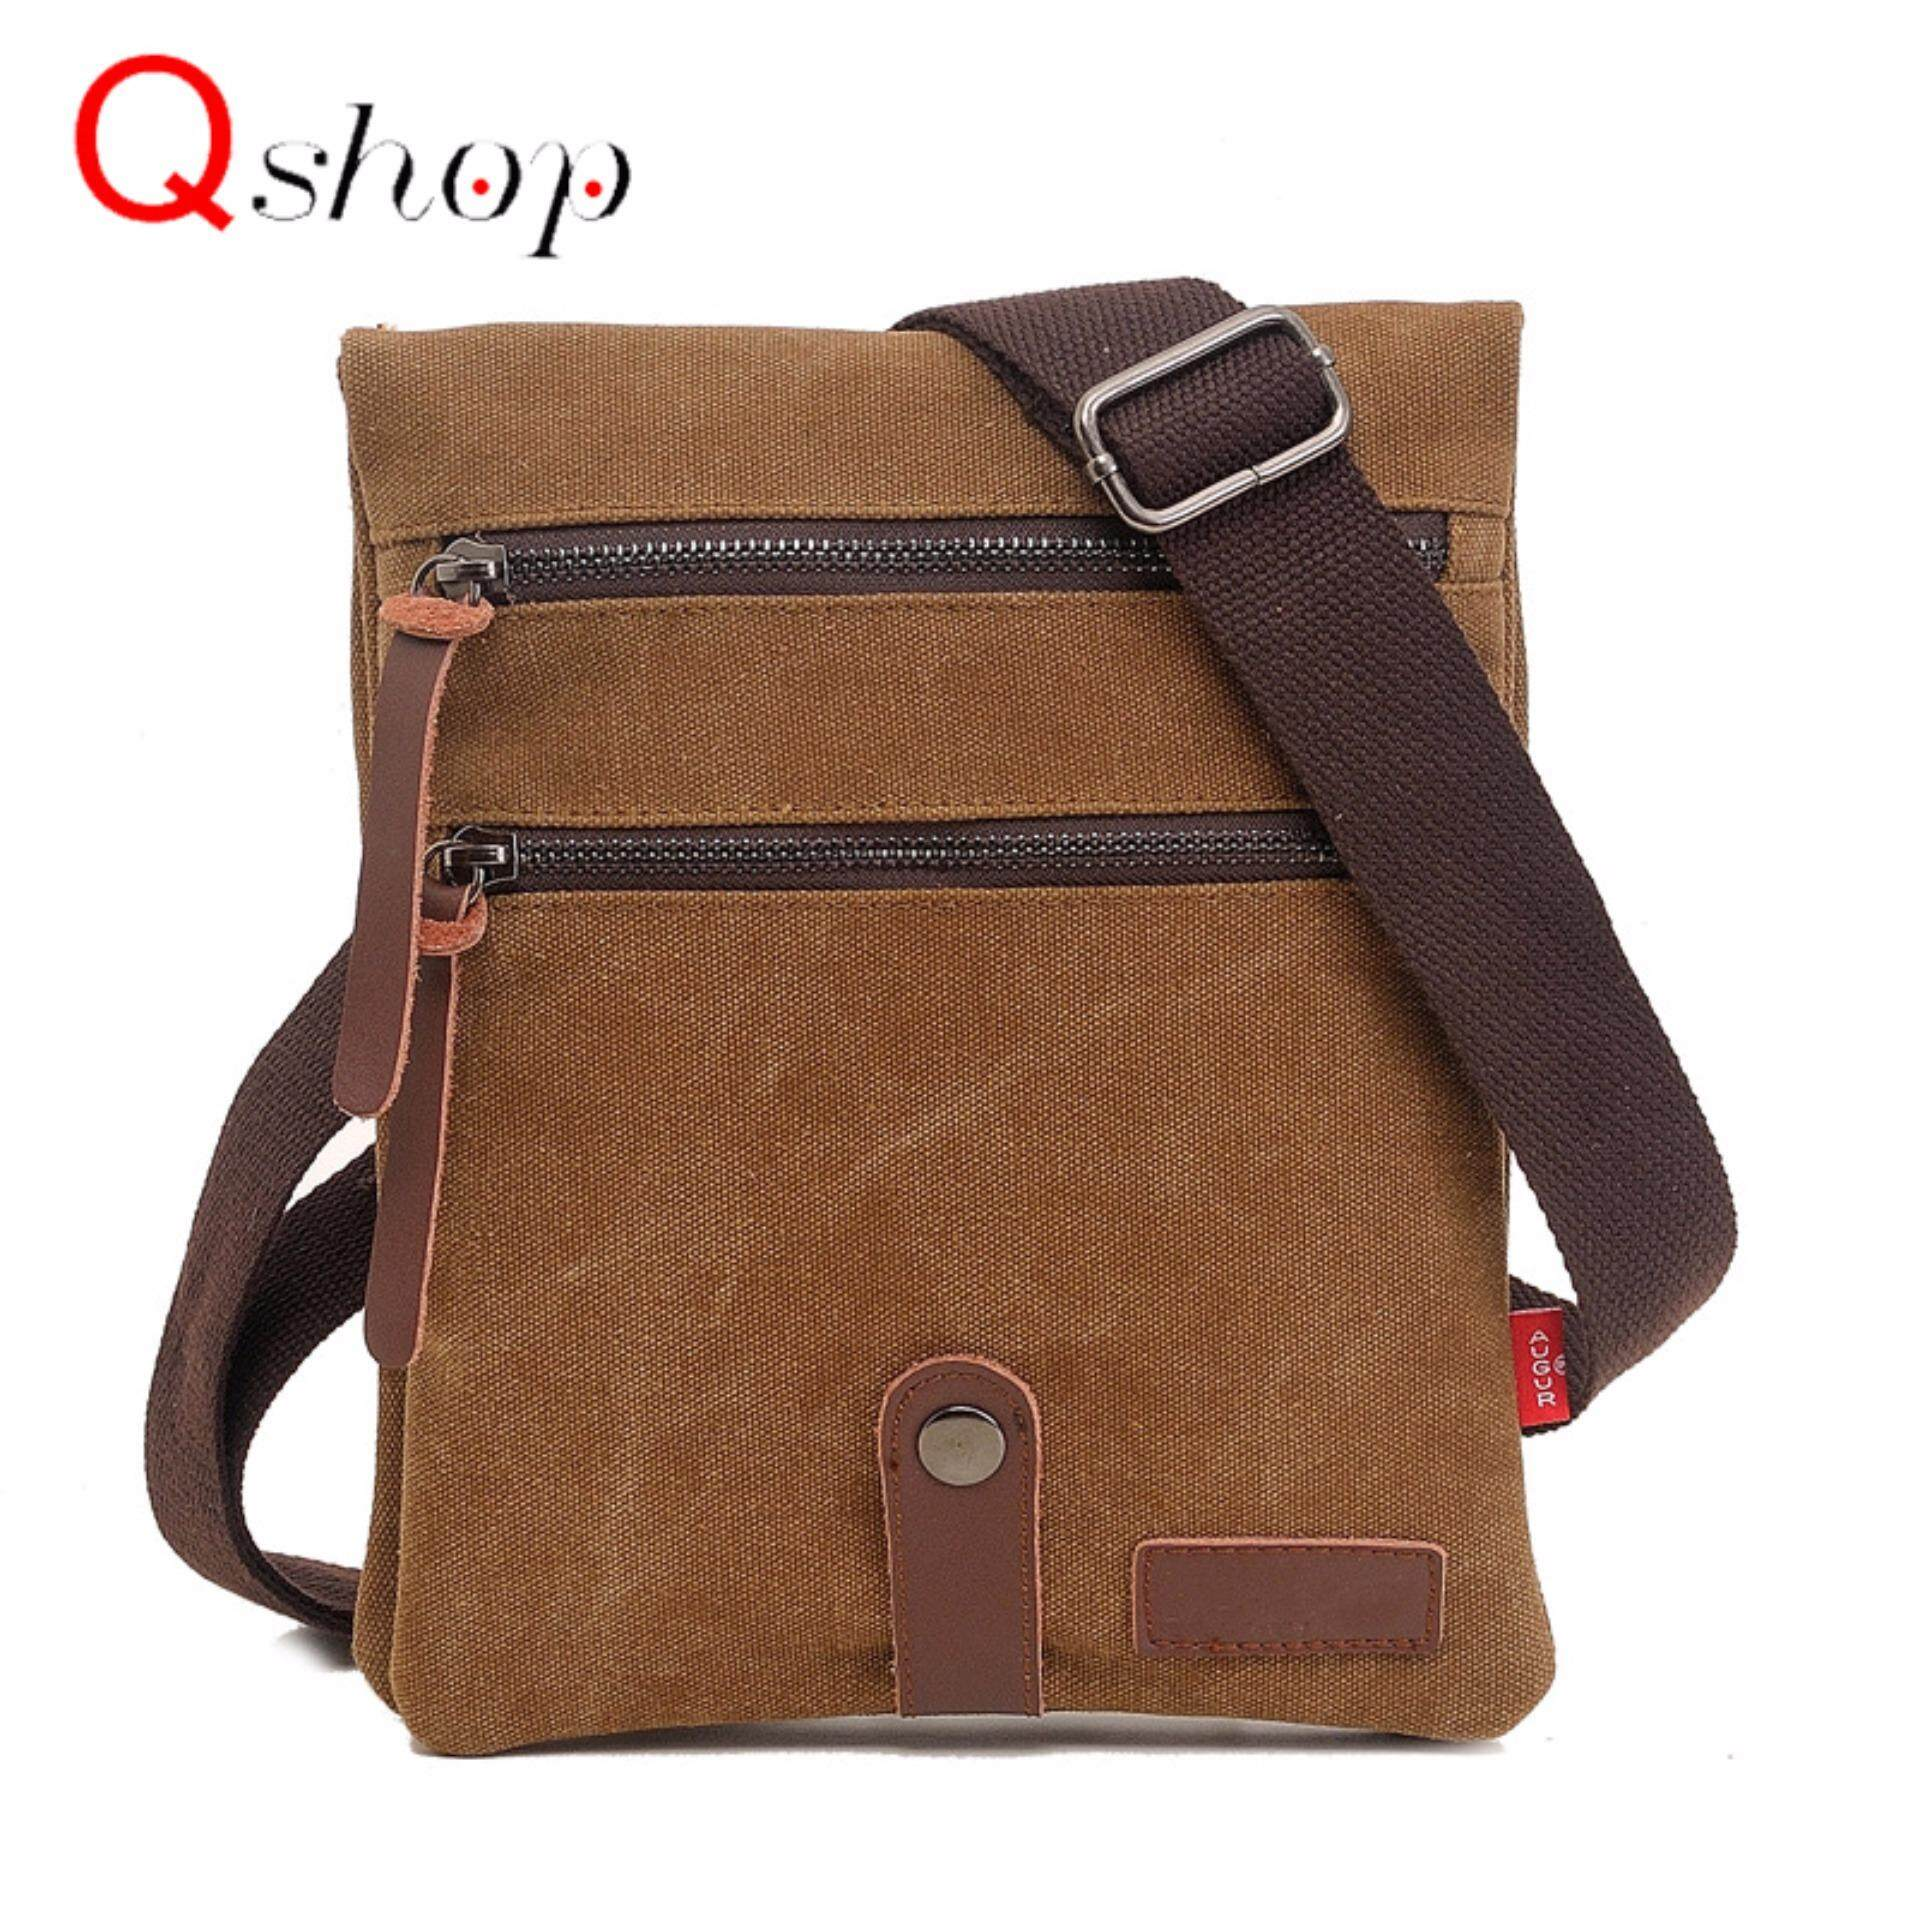 0de95ff0eb68 Vintage Travel Backpack Leisure Canvas With Leather- Fenix Toulouse ...